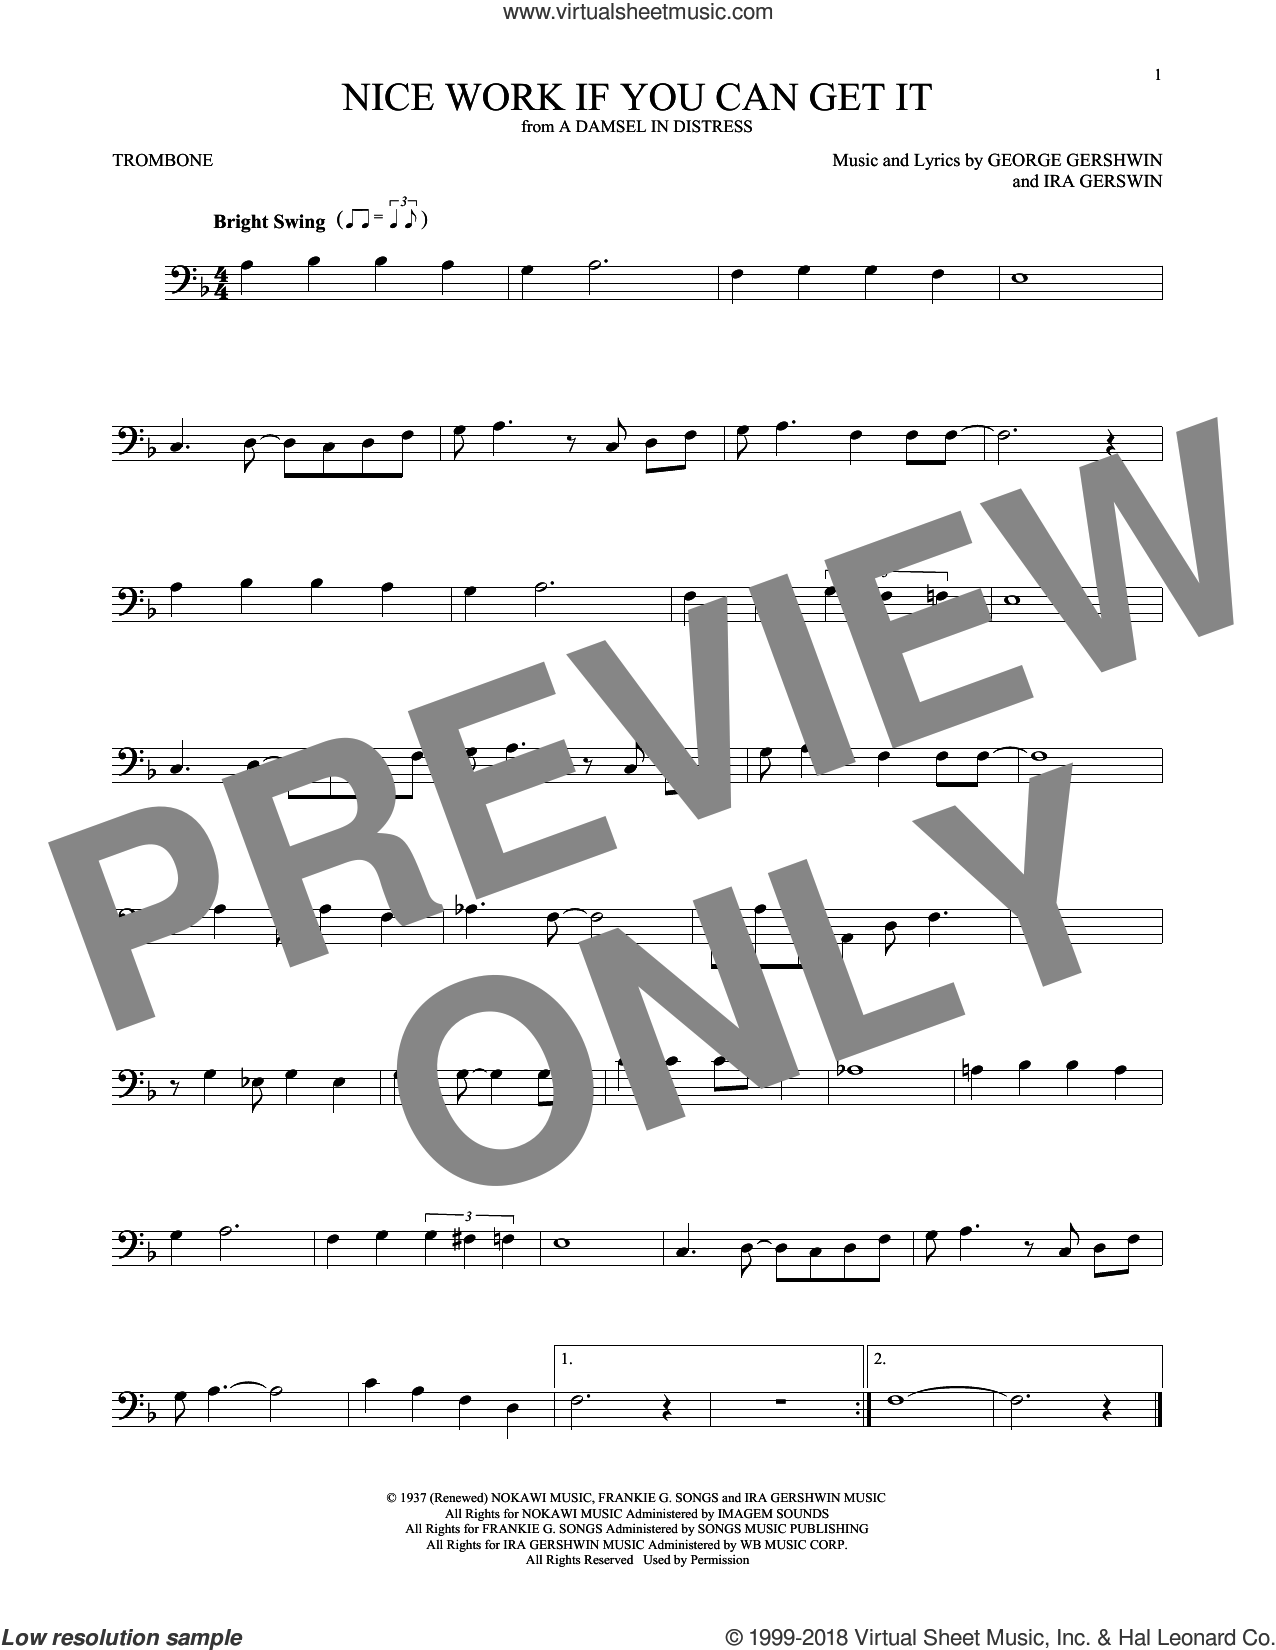 Nice Work If You Can Get It sheet music for trombone solo by Frank Sinatra, George Gershwin and Ira Gershwin, intermediate skill level